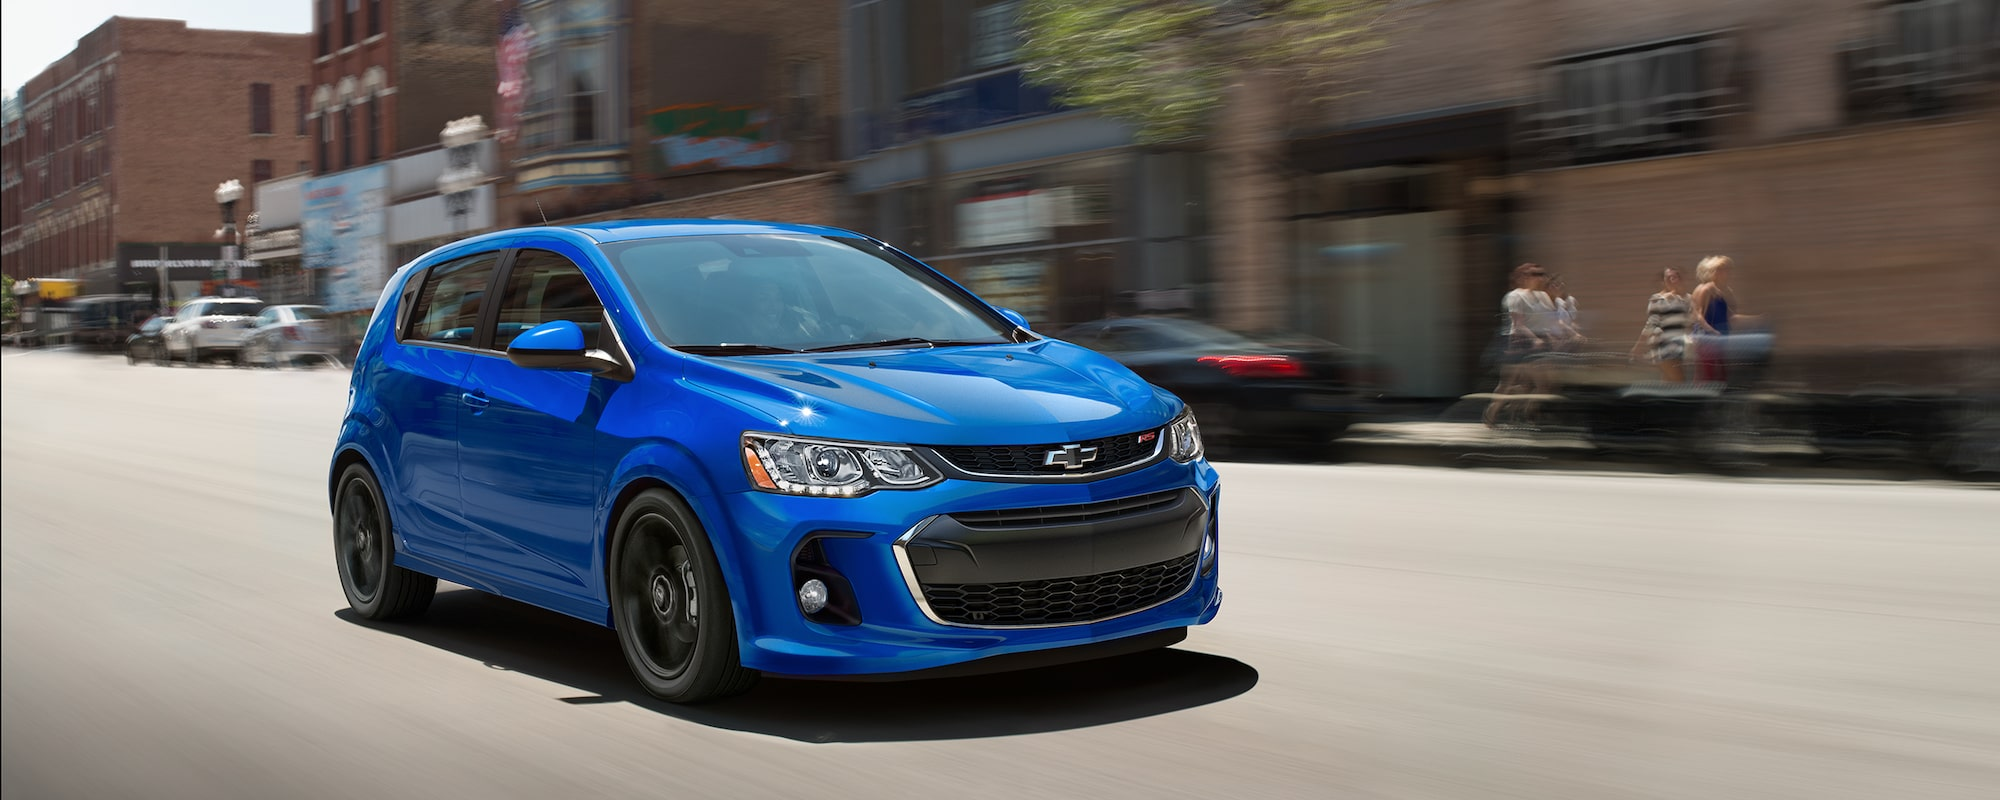 hight resolution of chevrolet 2019 sonic compact car